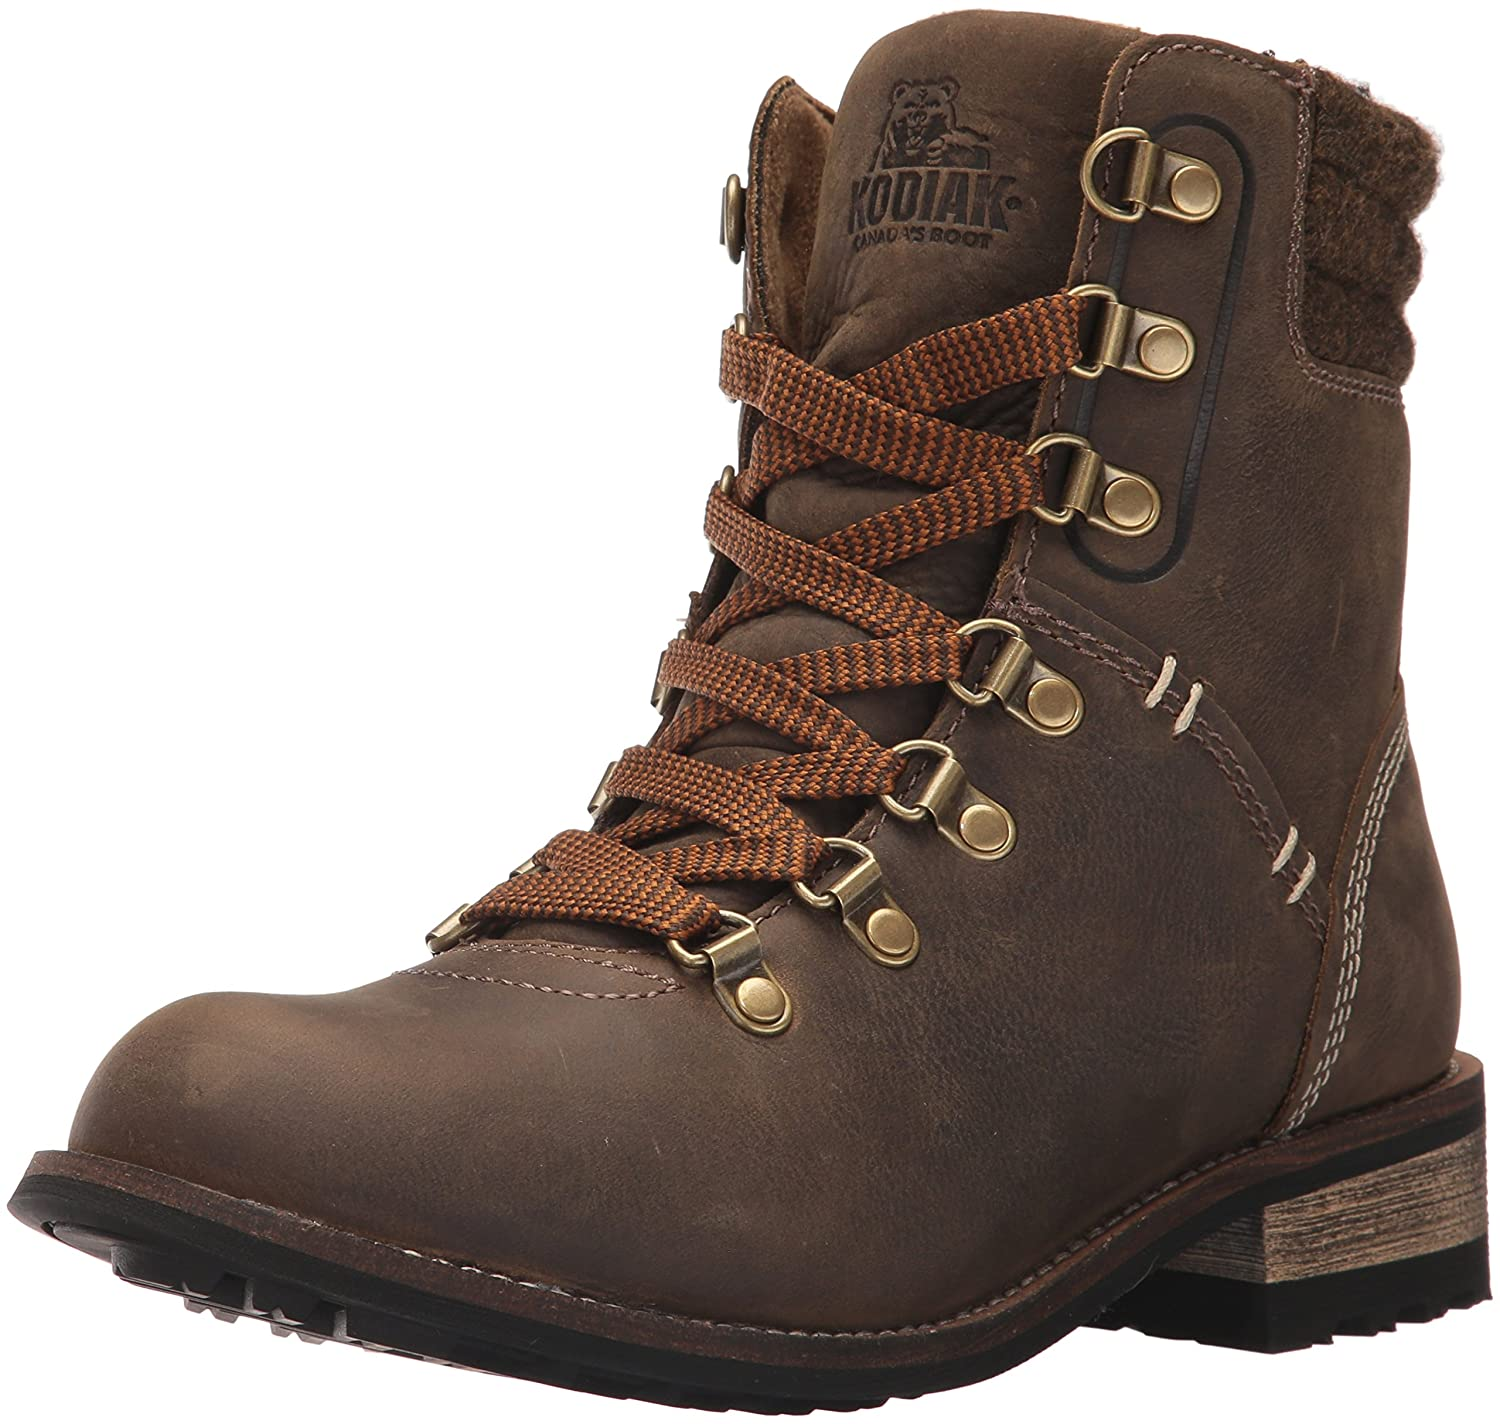 Kodiak Women's Surrey II Hiking Boot B0711BMZM7 11 B(M) US|Olive